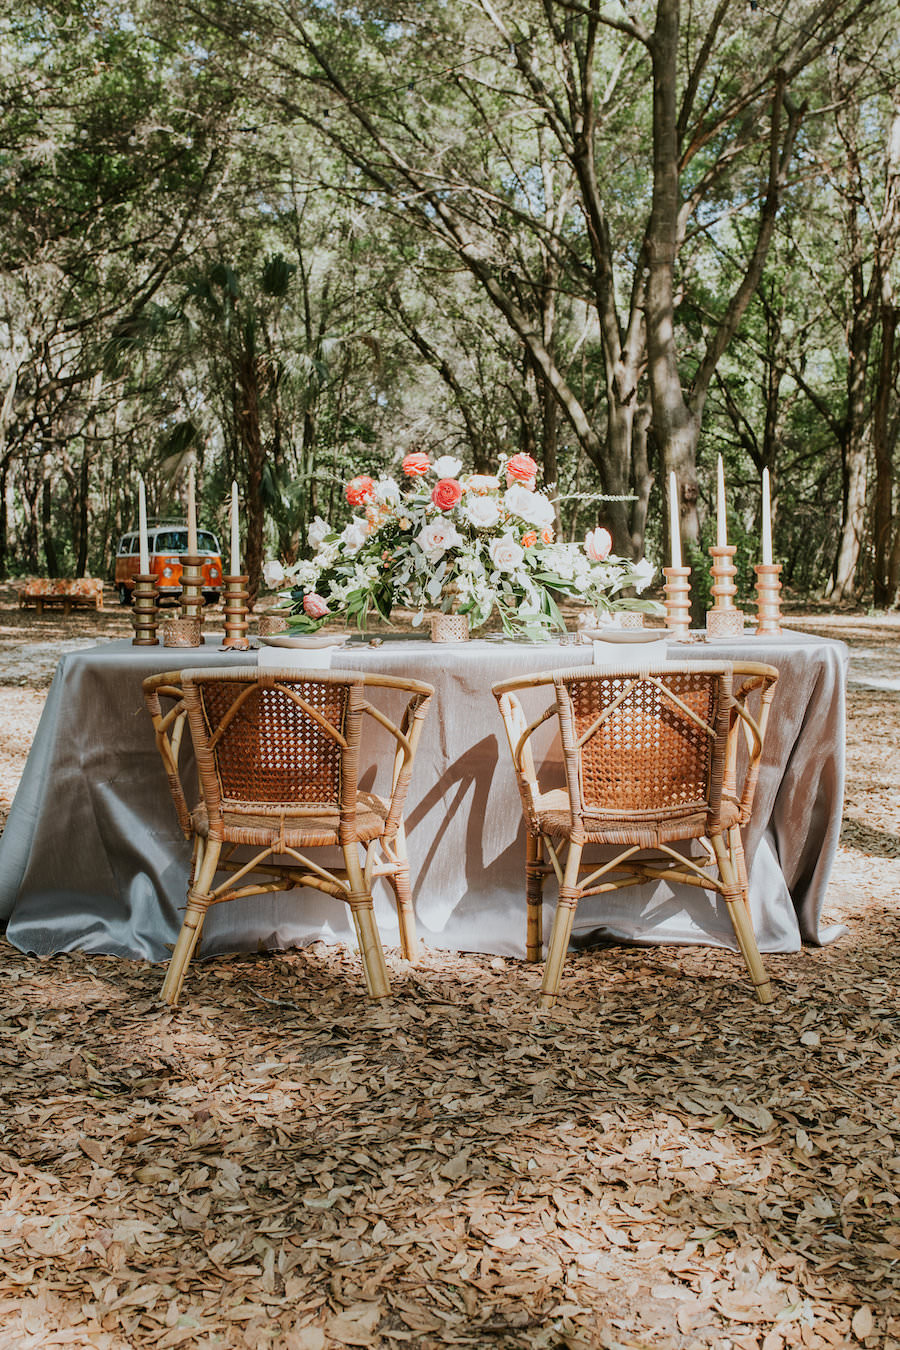 Peach and Blush Pink Wedding Centerpieces with Greenery, Candles, Wicker Chairs and Shimmery Neutral Linens   Retro Vintage Boho Wedding Inspiration   Tampa Wedding Florist Northside Florist   Planner Glitz Events   Outdoor Venue Casa Lantana   Over the Top Linen Rentals